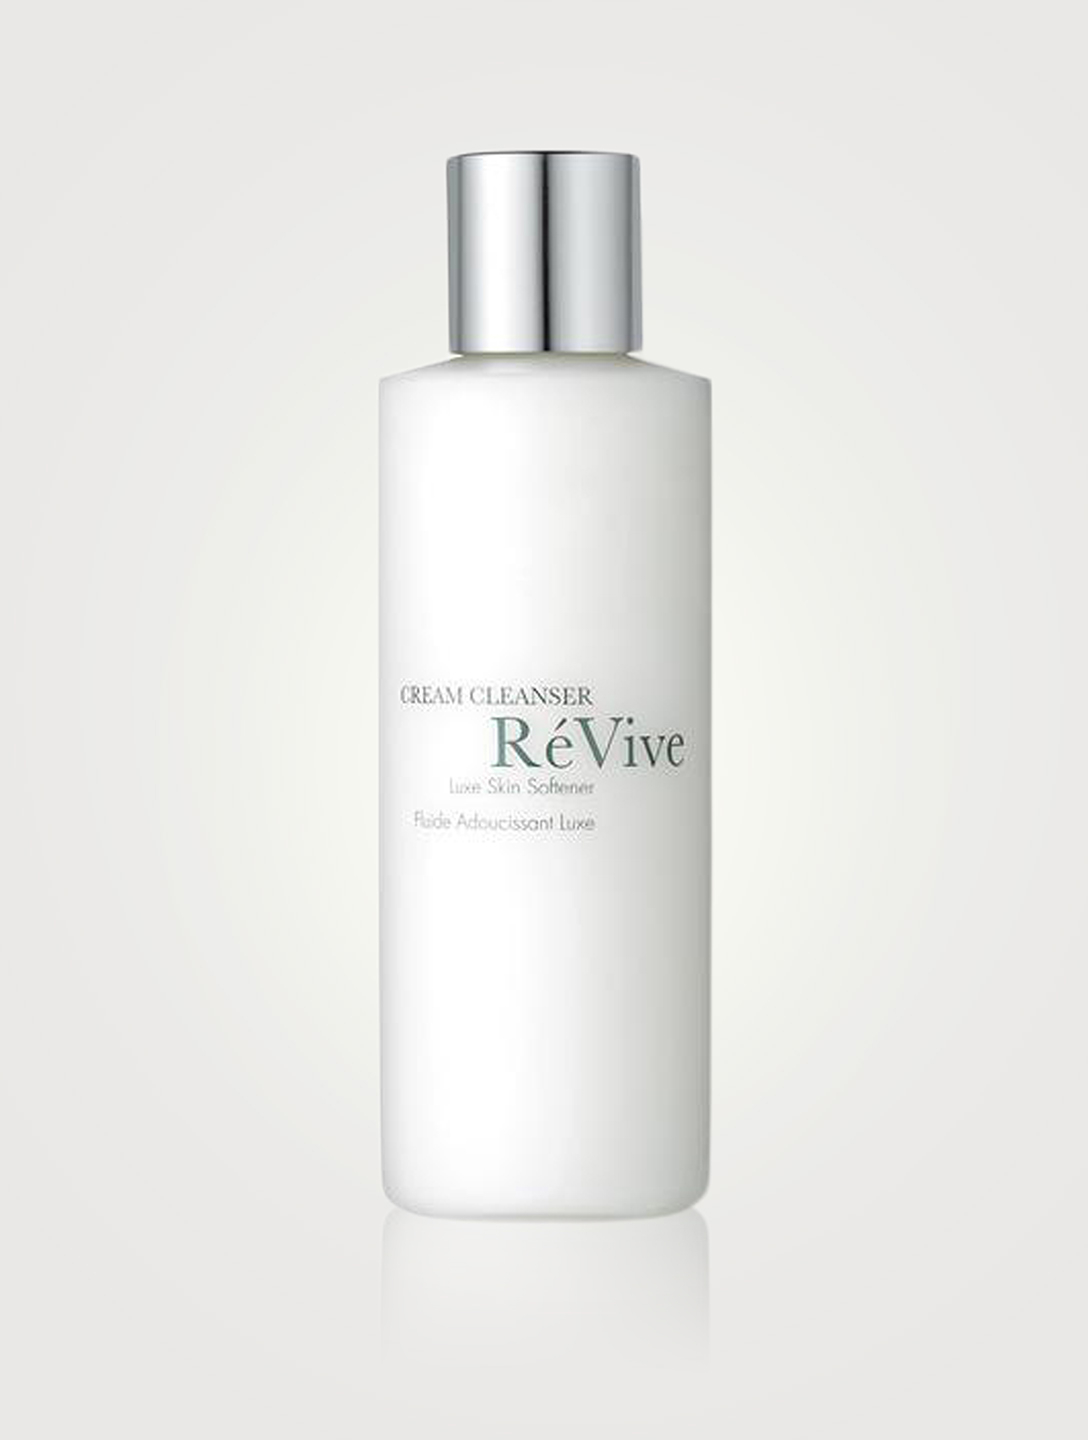 RÉVIVE Cream Cleanser Beauty